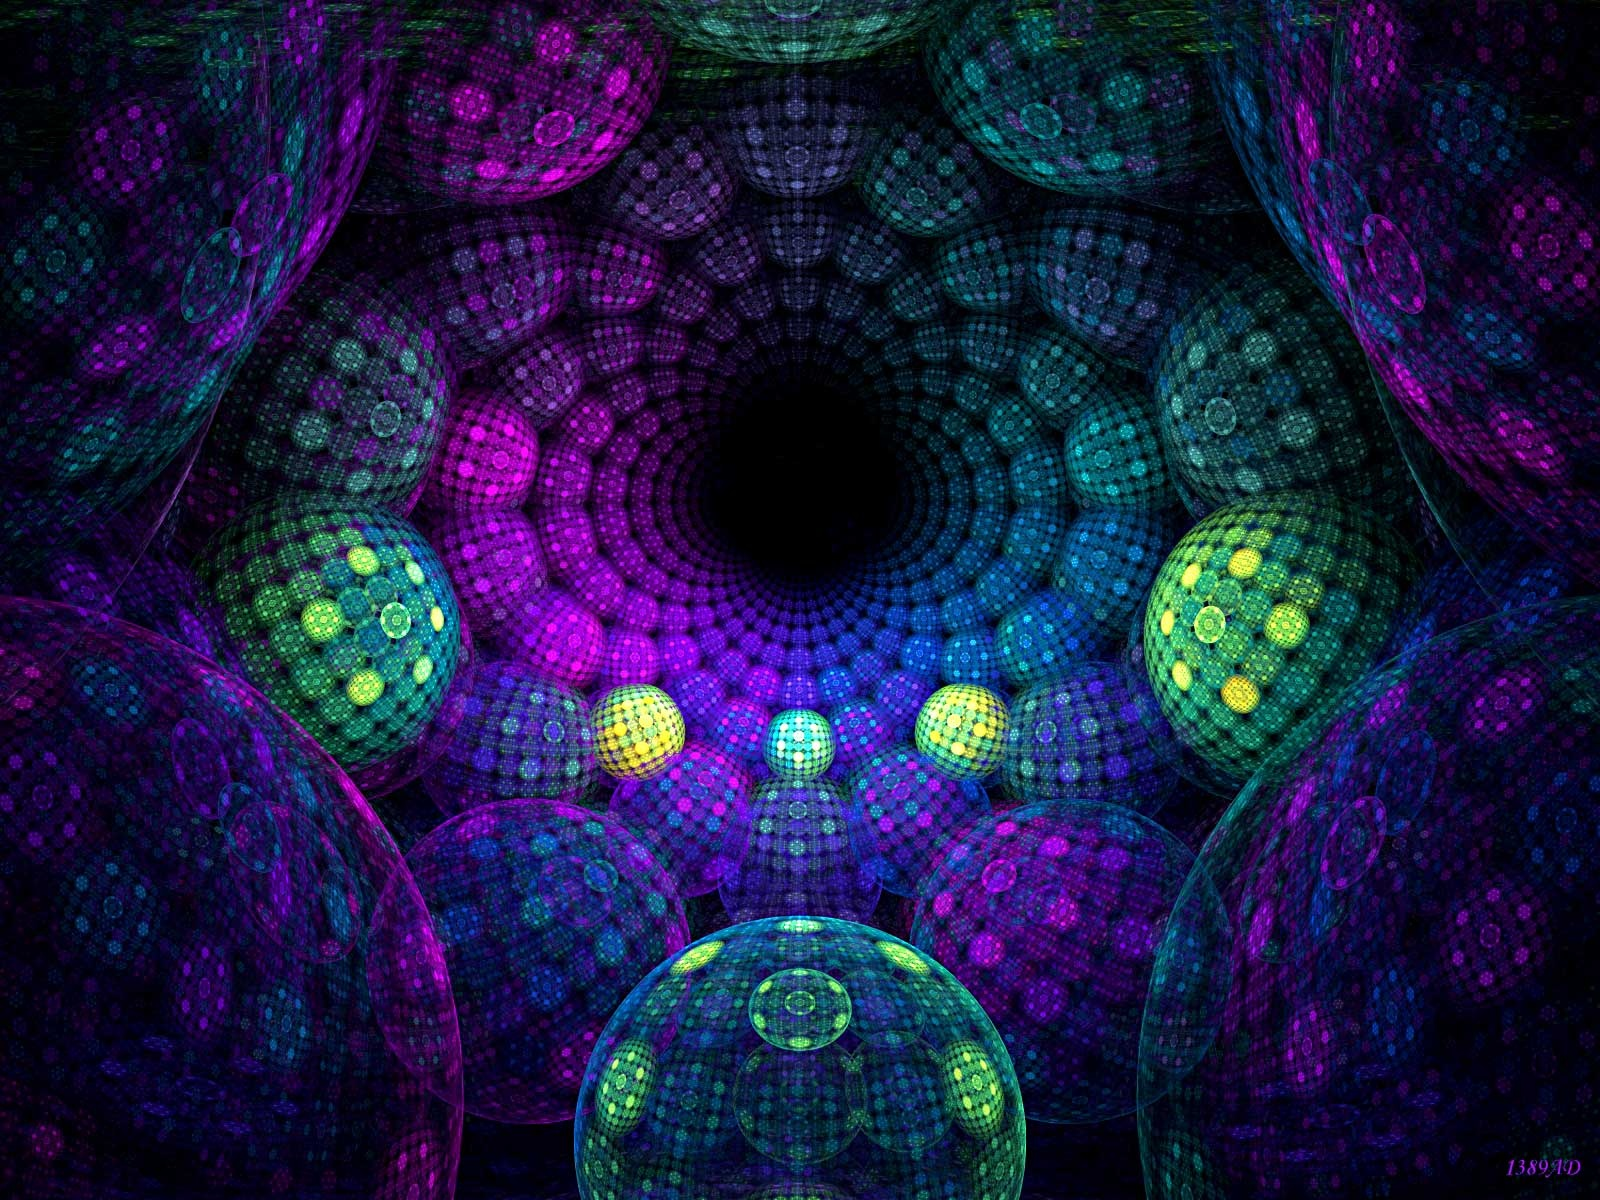 Psychedelic Desktop Backgrounds Hd Images amp Pictures   Becuo 1600x1200